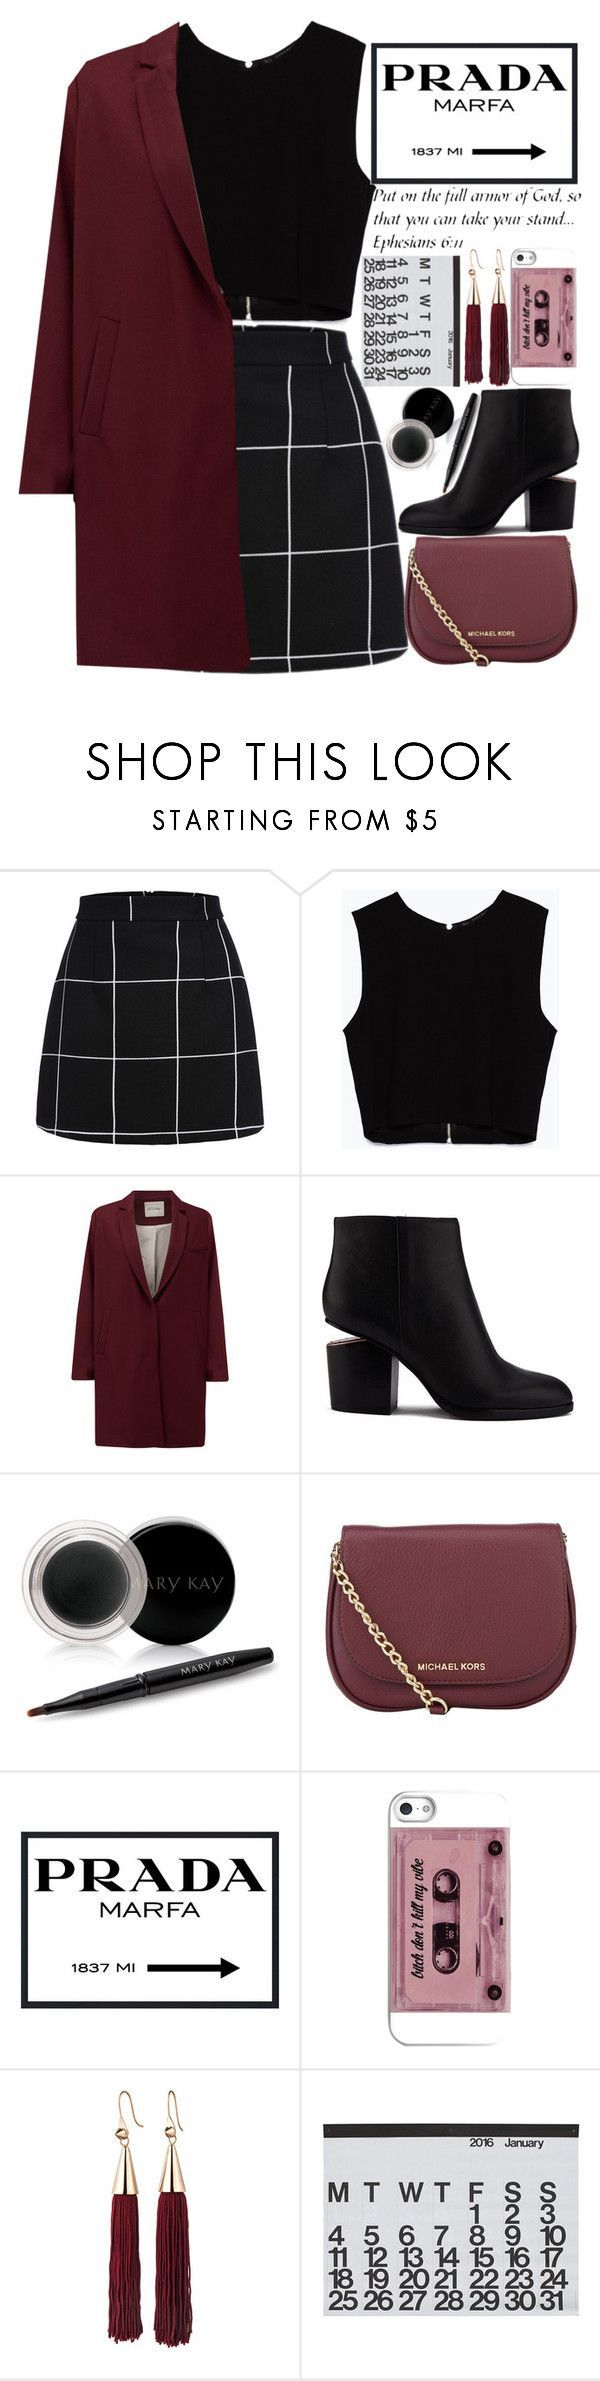 """""""Oxs Blood like/comment"""" by makfashions ❤ liked on Polyvore featuring Zara, American Vintage, Alexander Wang, Mary Kay, MICHAEL Michael Kors, Prada, Eddie Borgo, Crate and Barrel and WALL"""